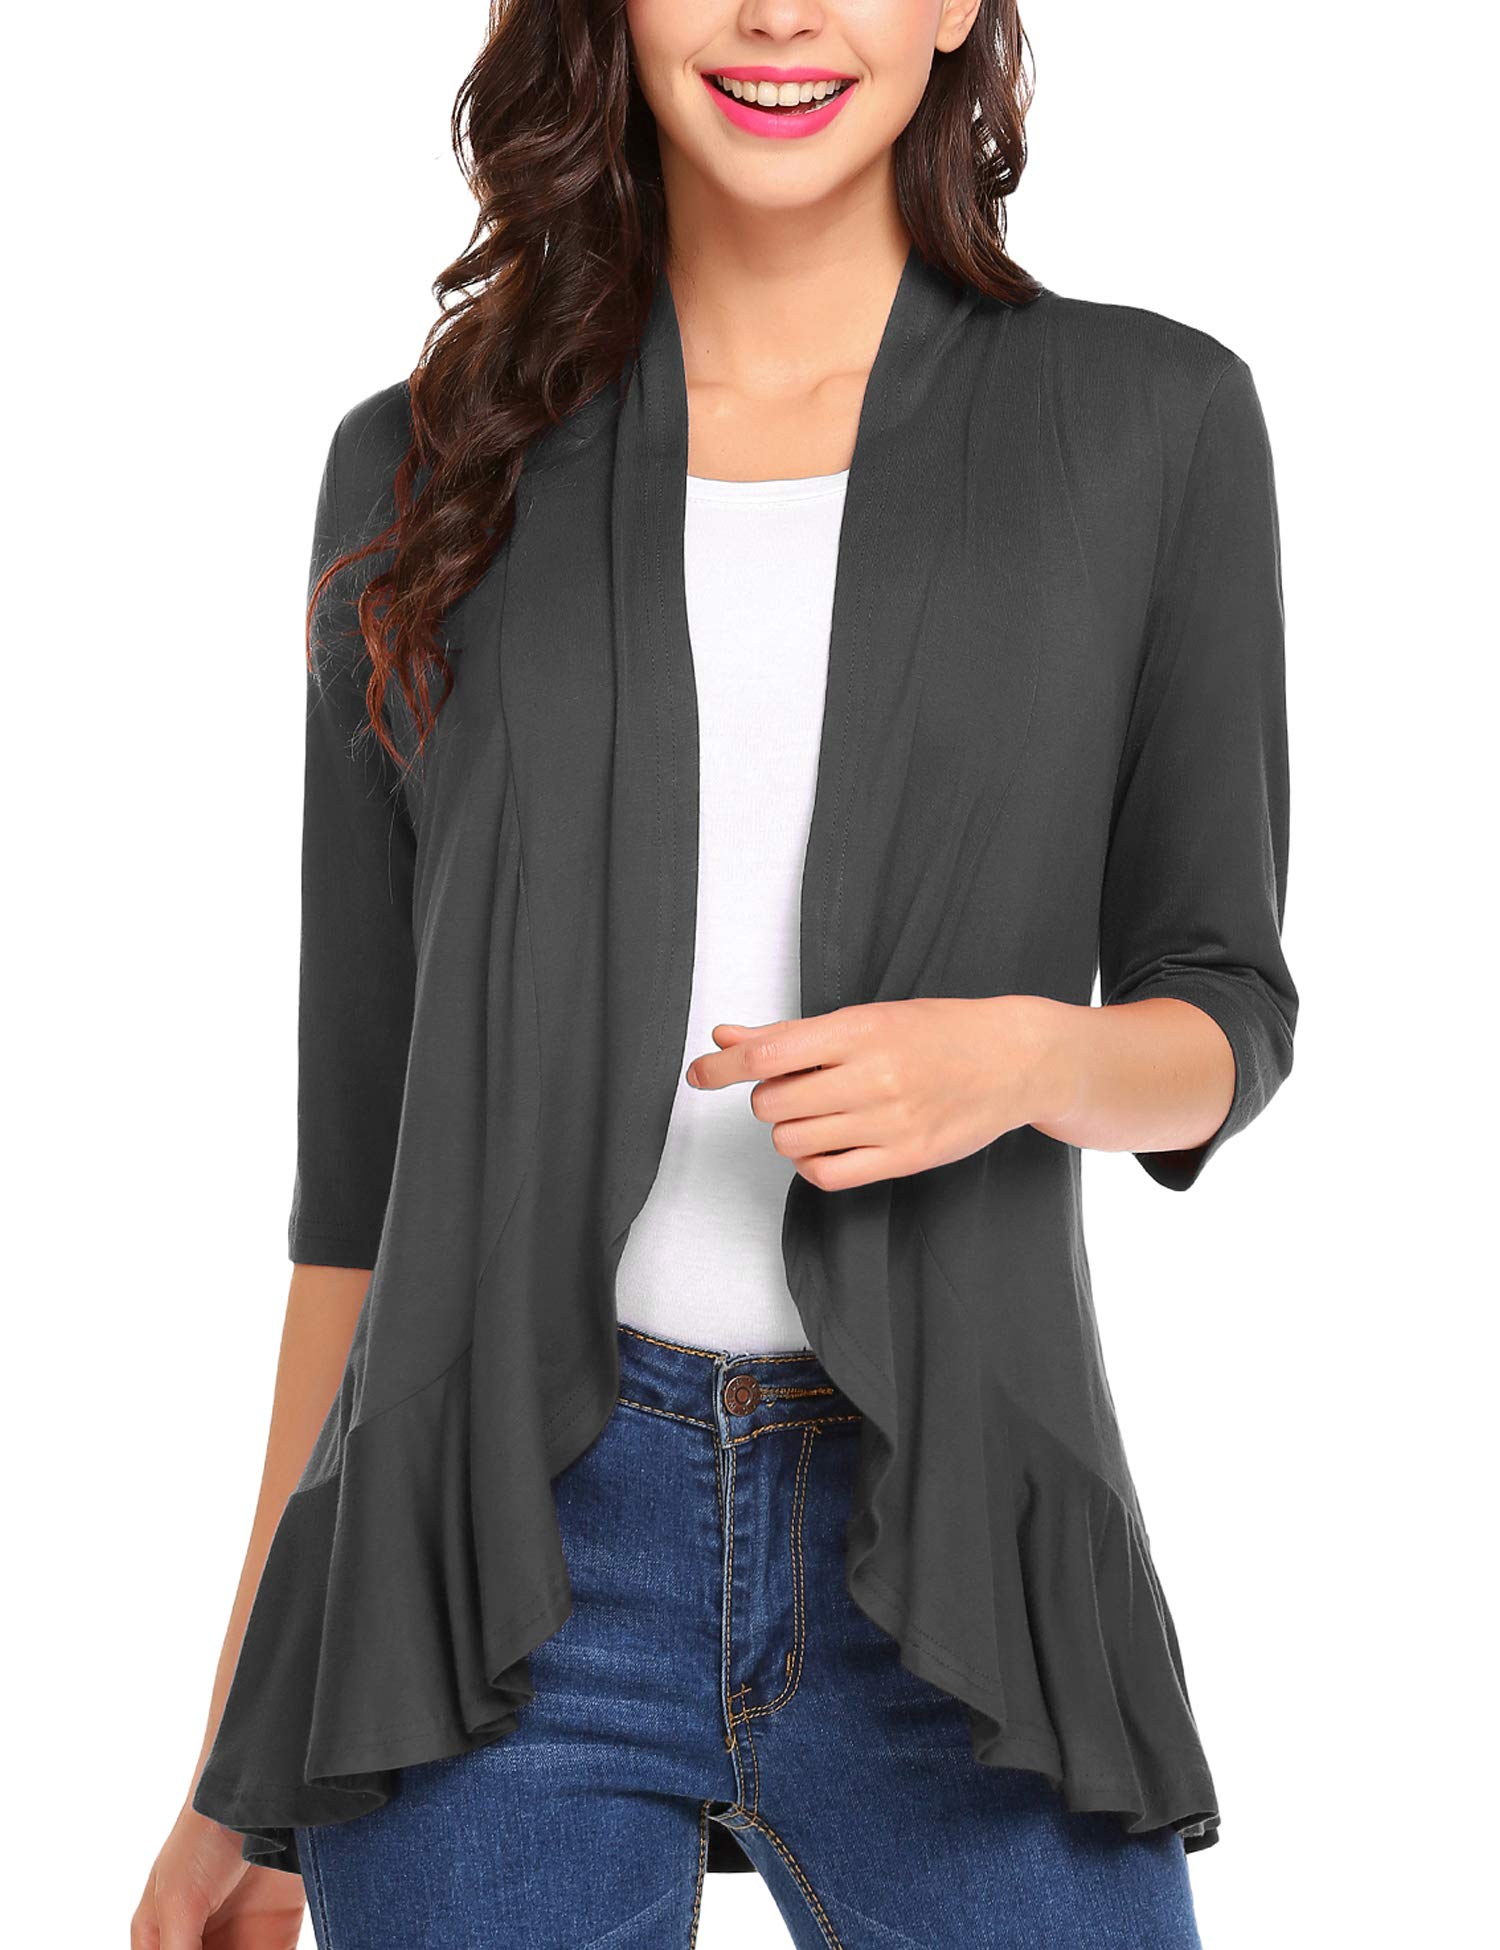 dd09ac54a57 Zeagoo Women s Open Front Cardigan 3 4 Sleeve Draped Ruffles Kimono Soft  Knit Sweaters Dark Grey Small